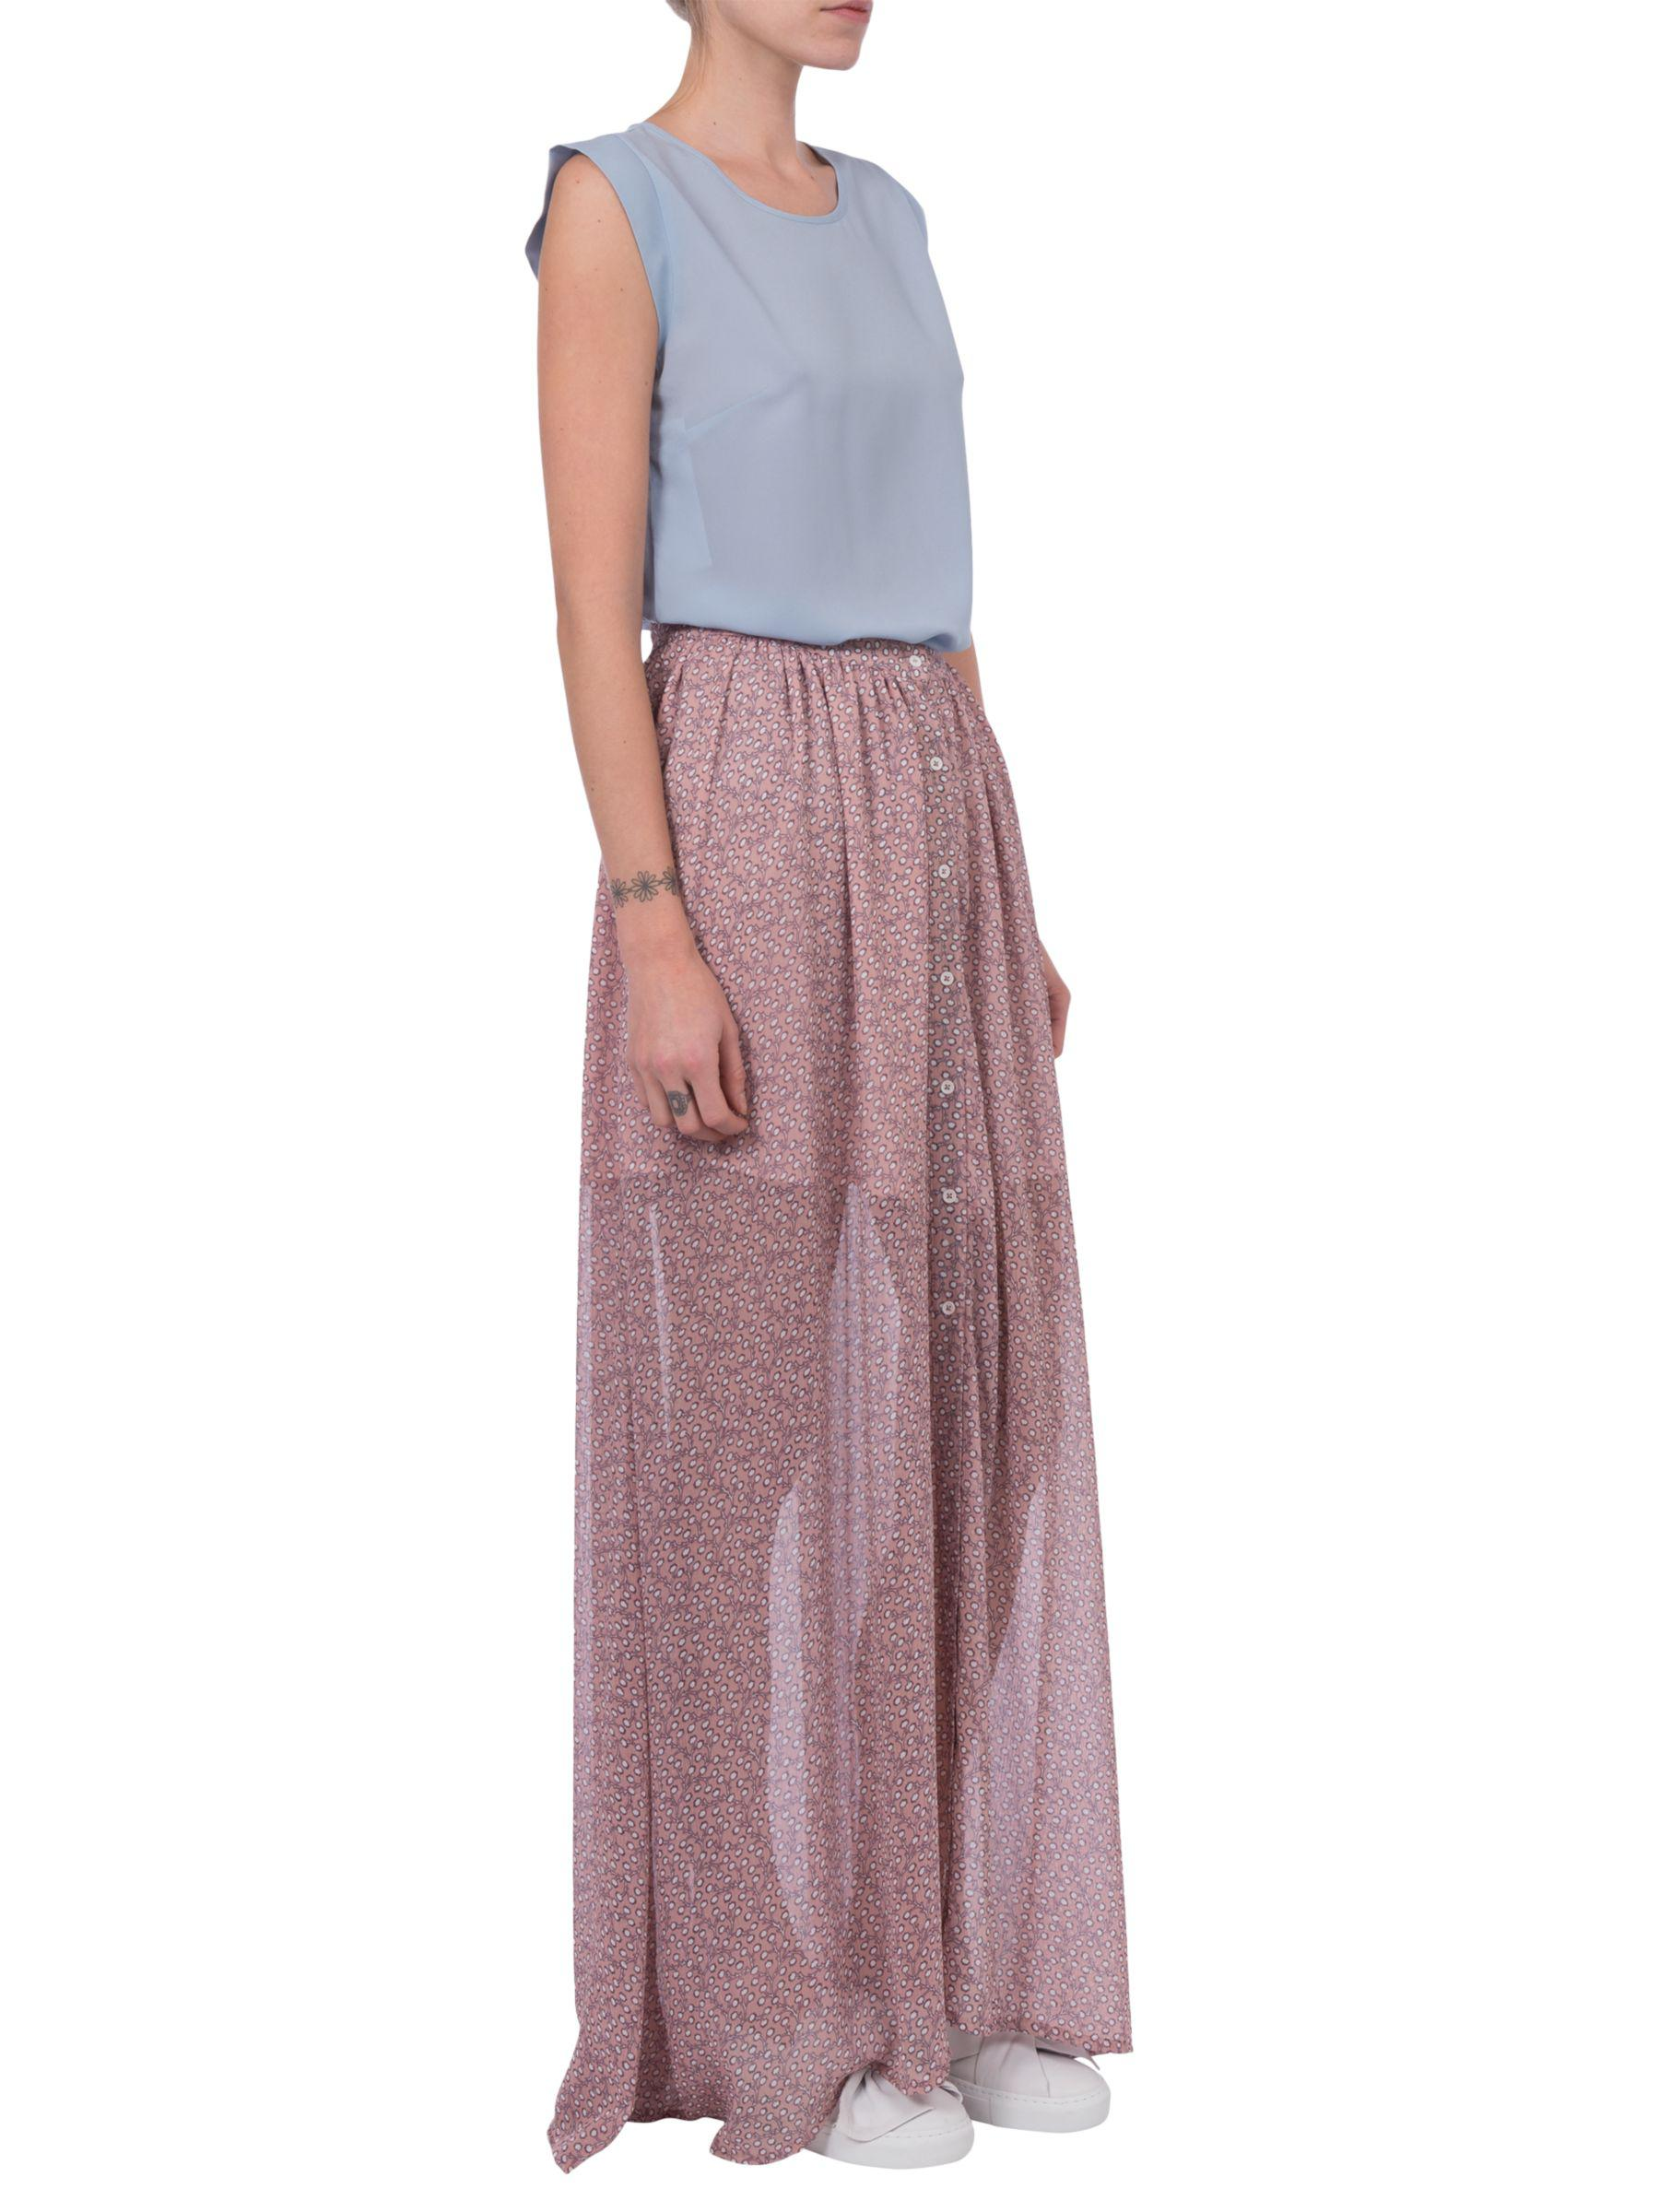 61d6cf31c0 French Connection - Multicolor Elao Sheer Maxi Skirt - Lyst. View fullscreen